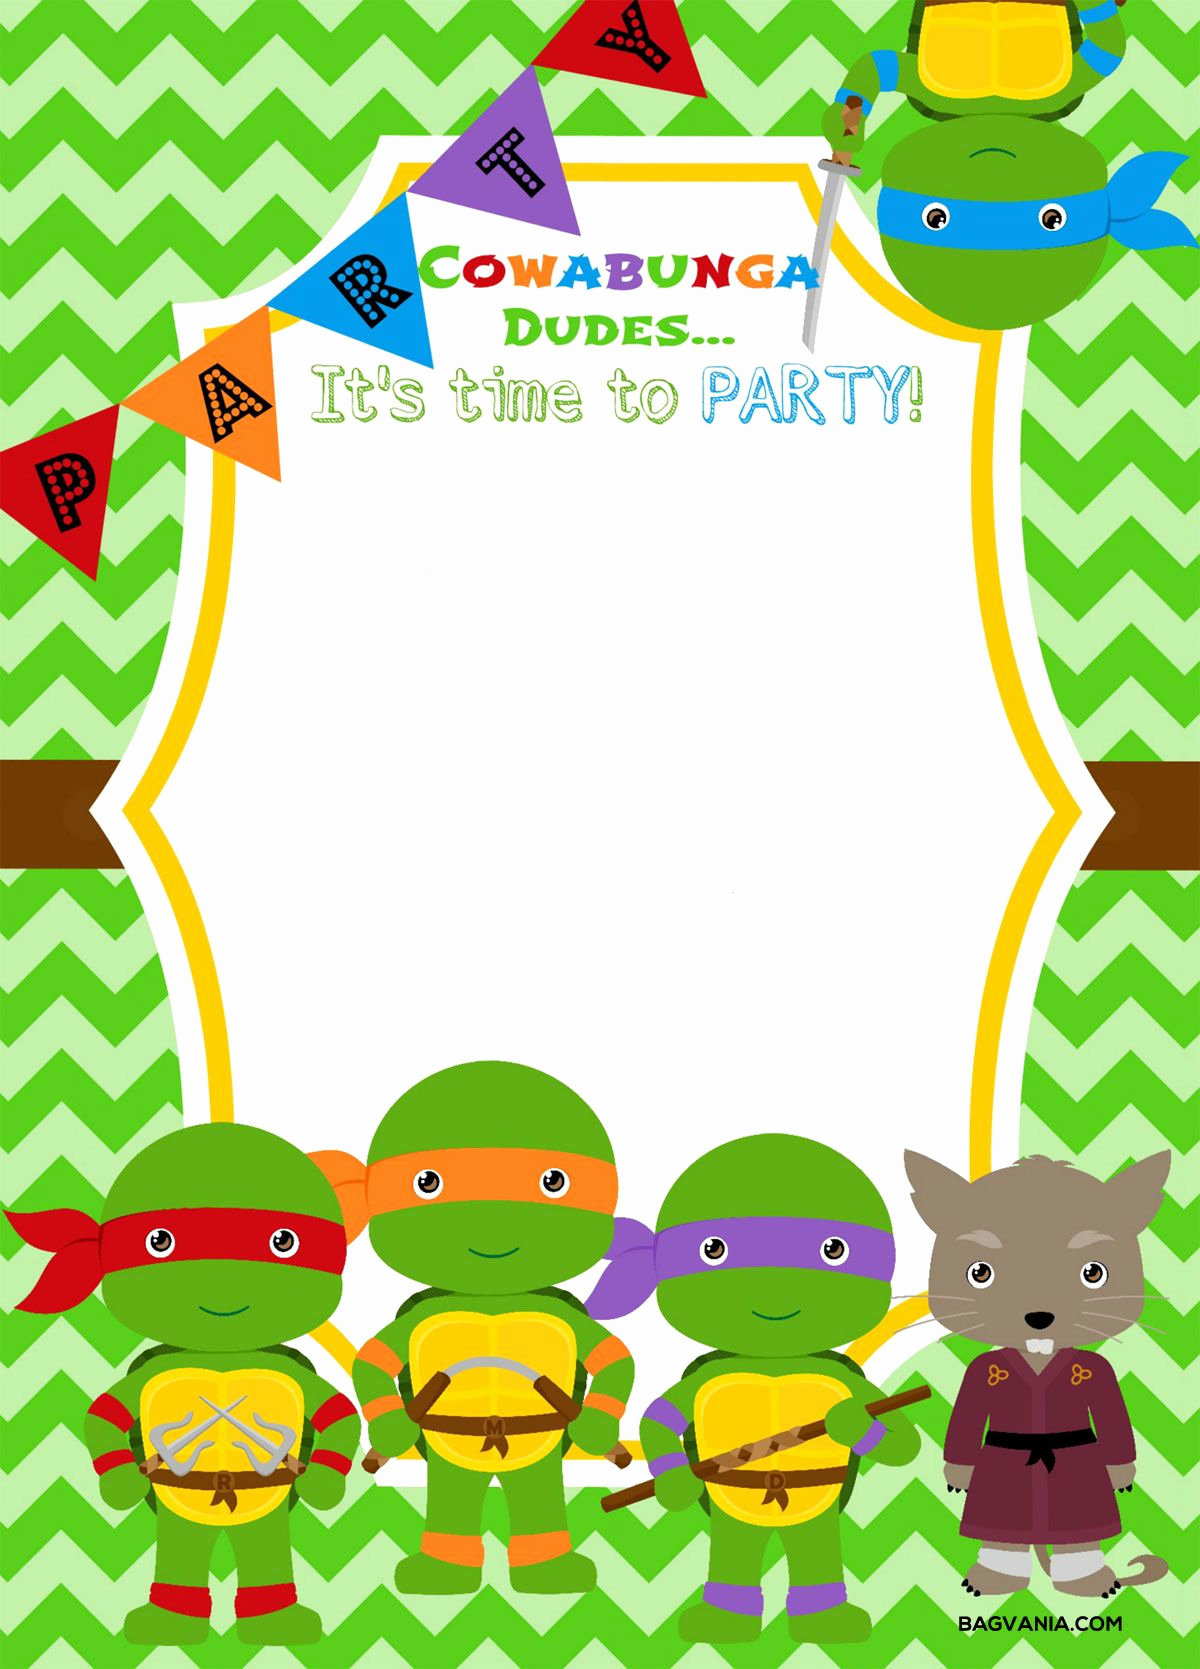 Ninja Turtles Birthday Invitation Awesome Download now Free Printable Ninja Turtle Birthday Party